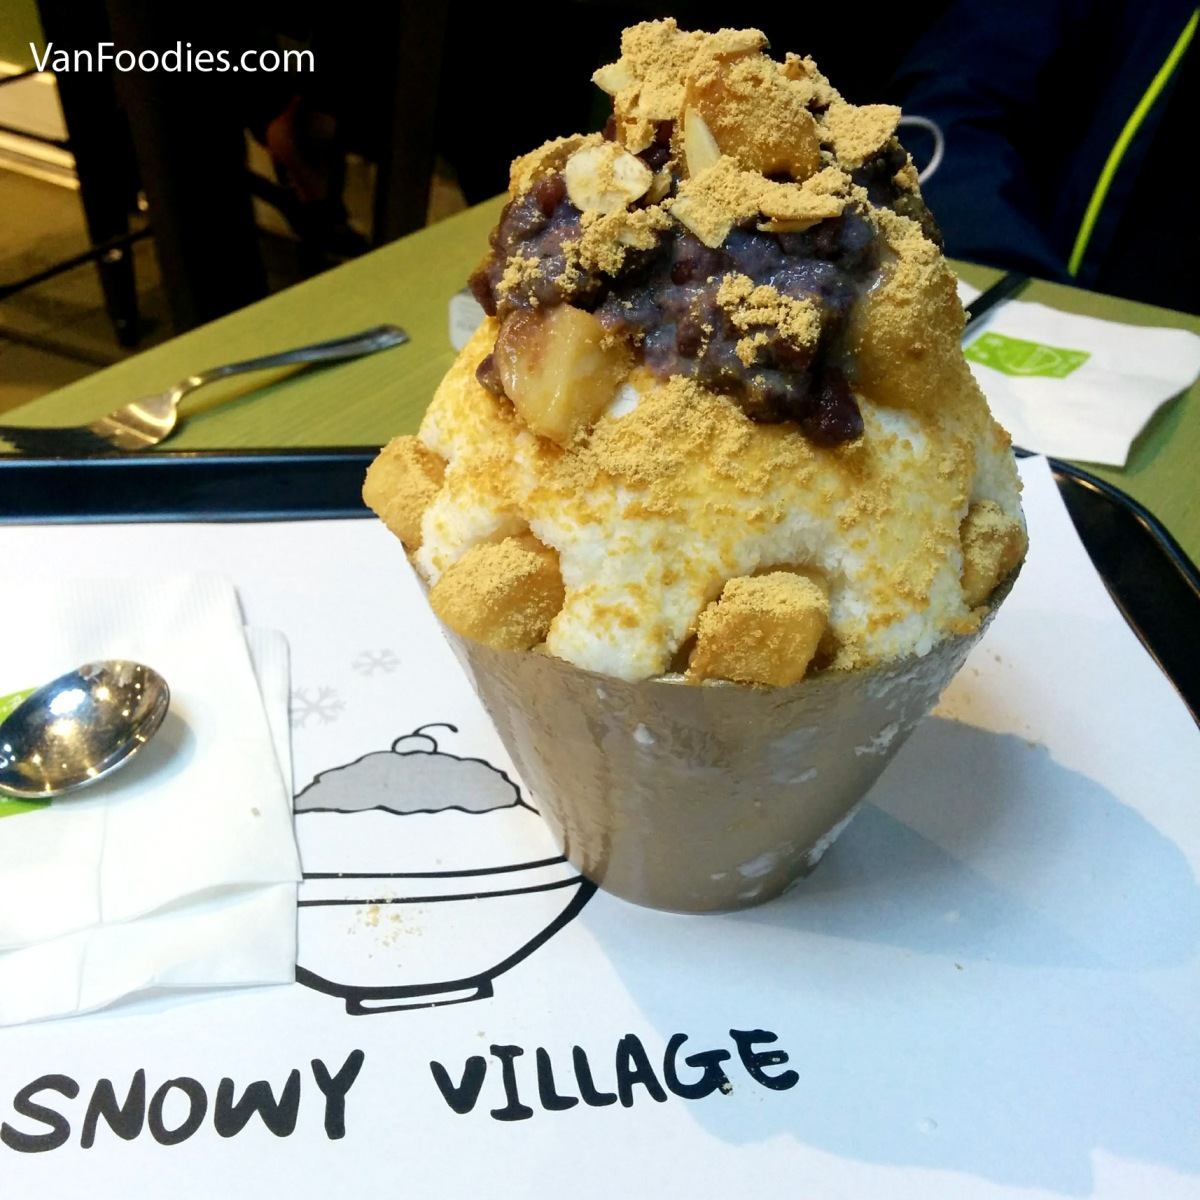 Snowy Village Richmond - Line Up for Bingsoo!